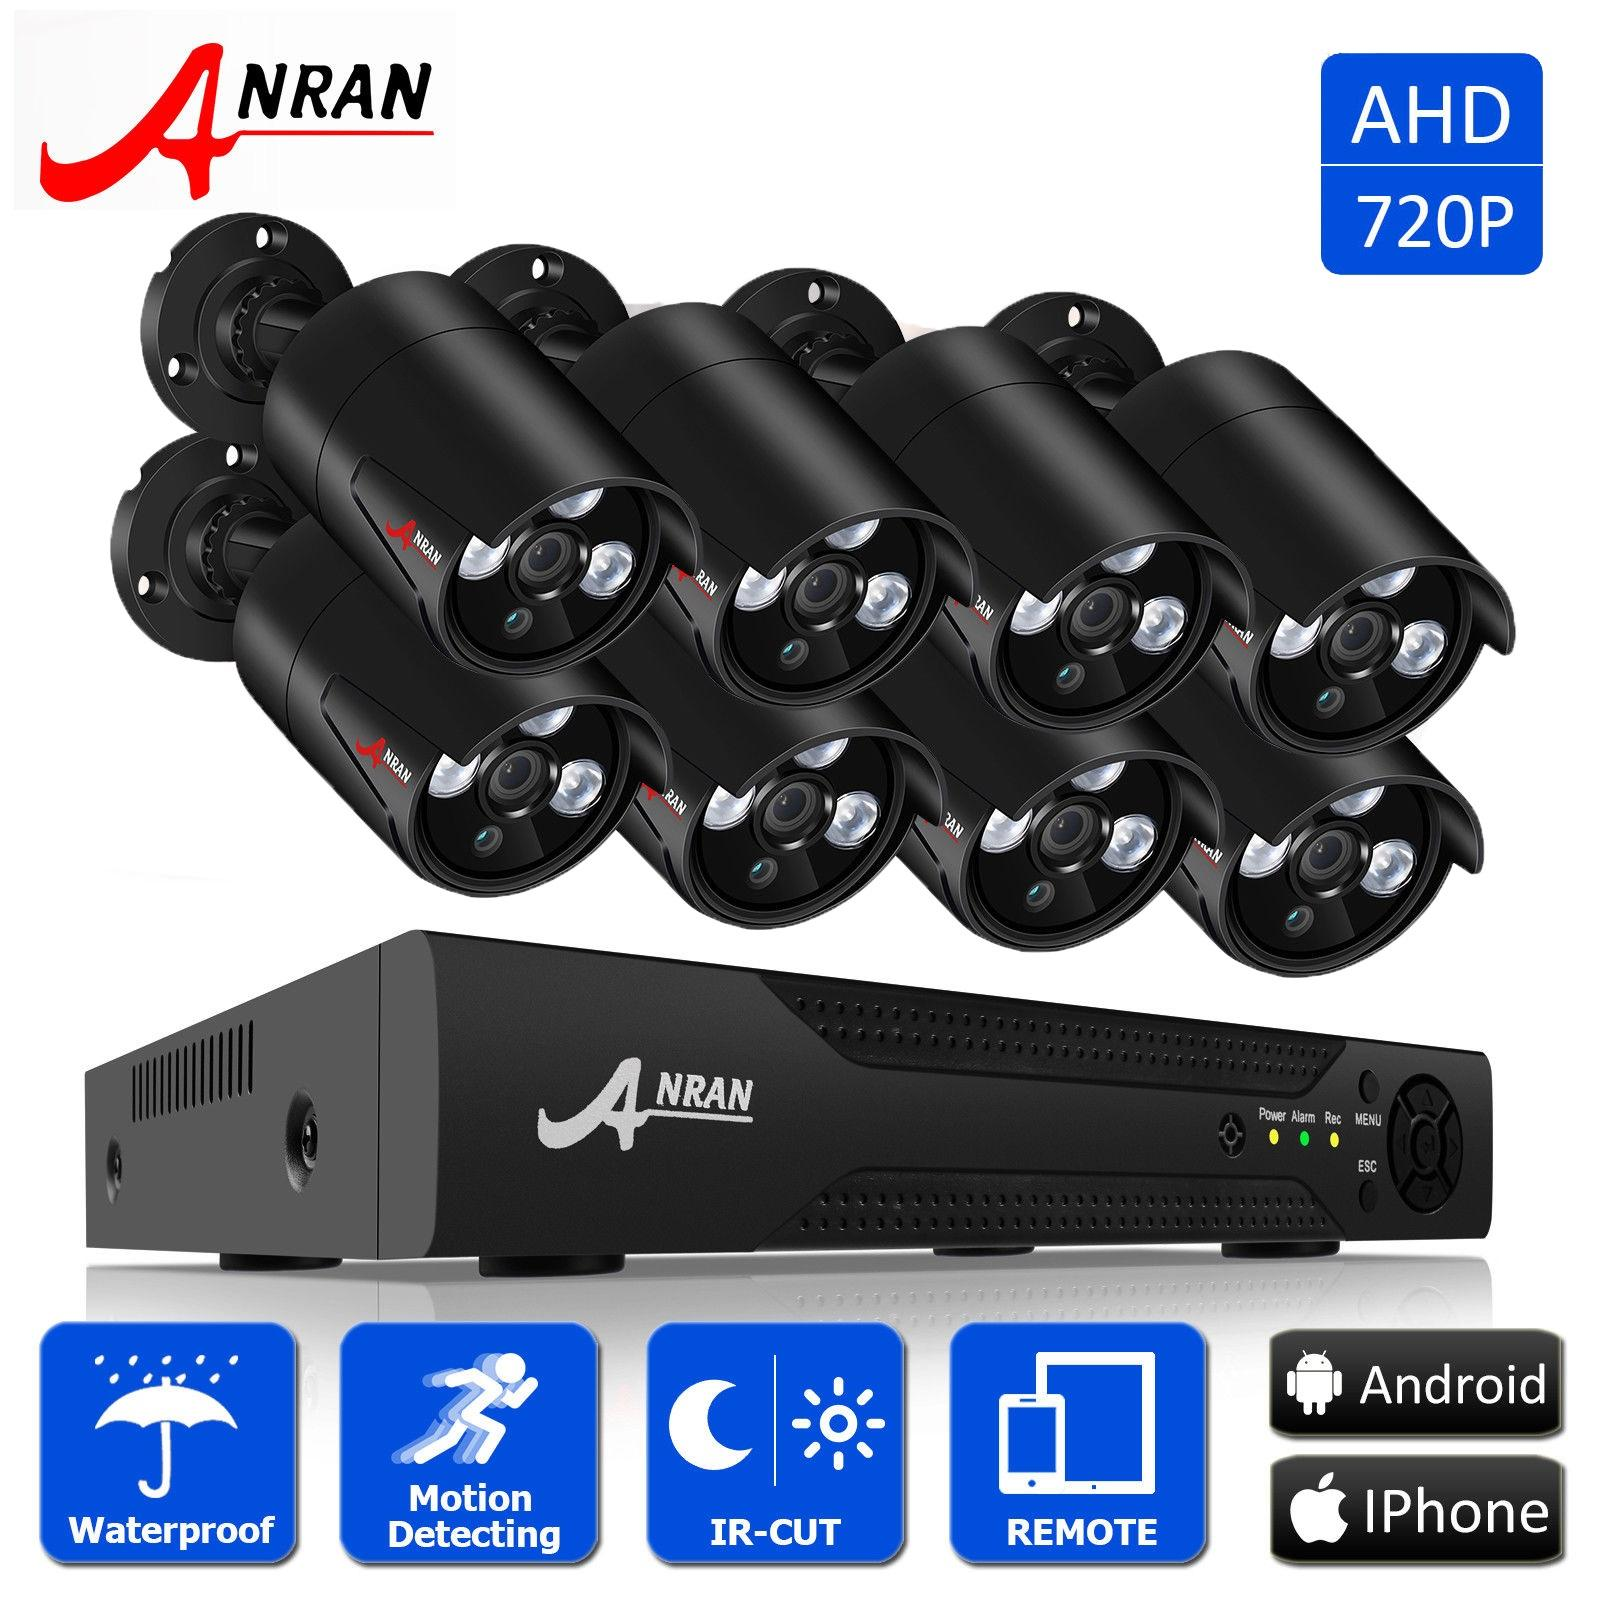 Discount Anran 8Ch 720P Ahd Home Security System With 8 Hd 1800Tvl Weatherproof Outdoor Ip Camera Anran